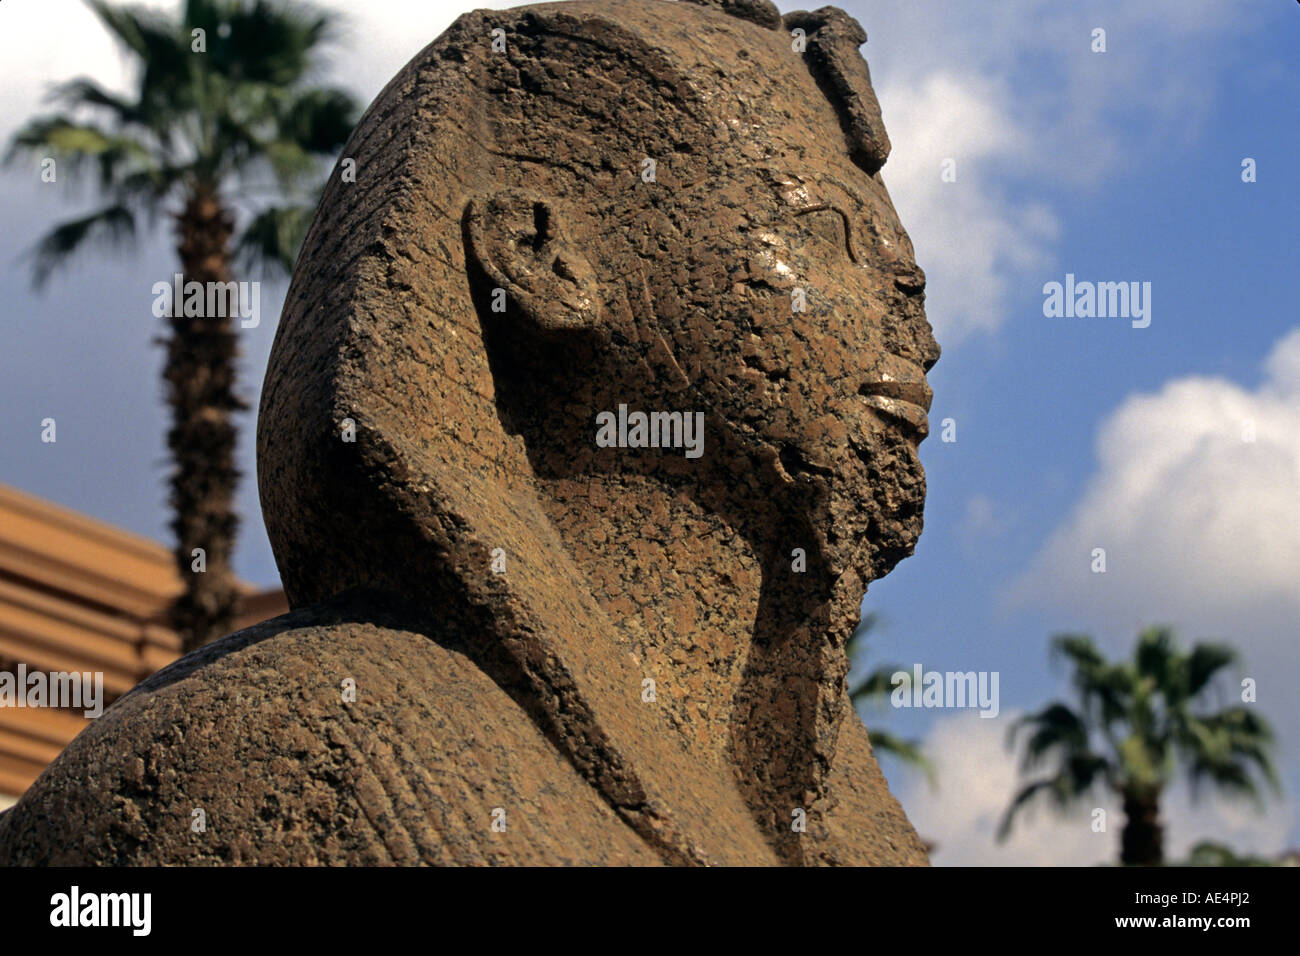 Ancient sculpture stands outside the Cairo Museum, Egypt. - Stock Image